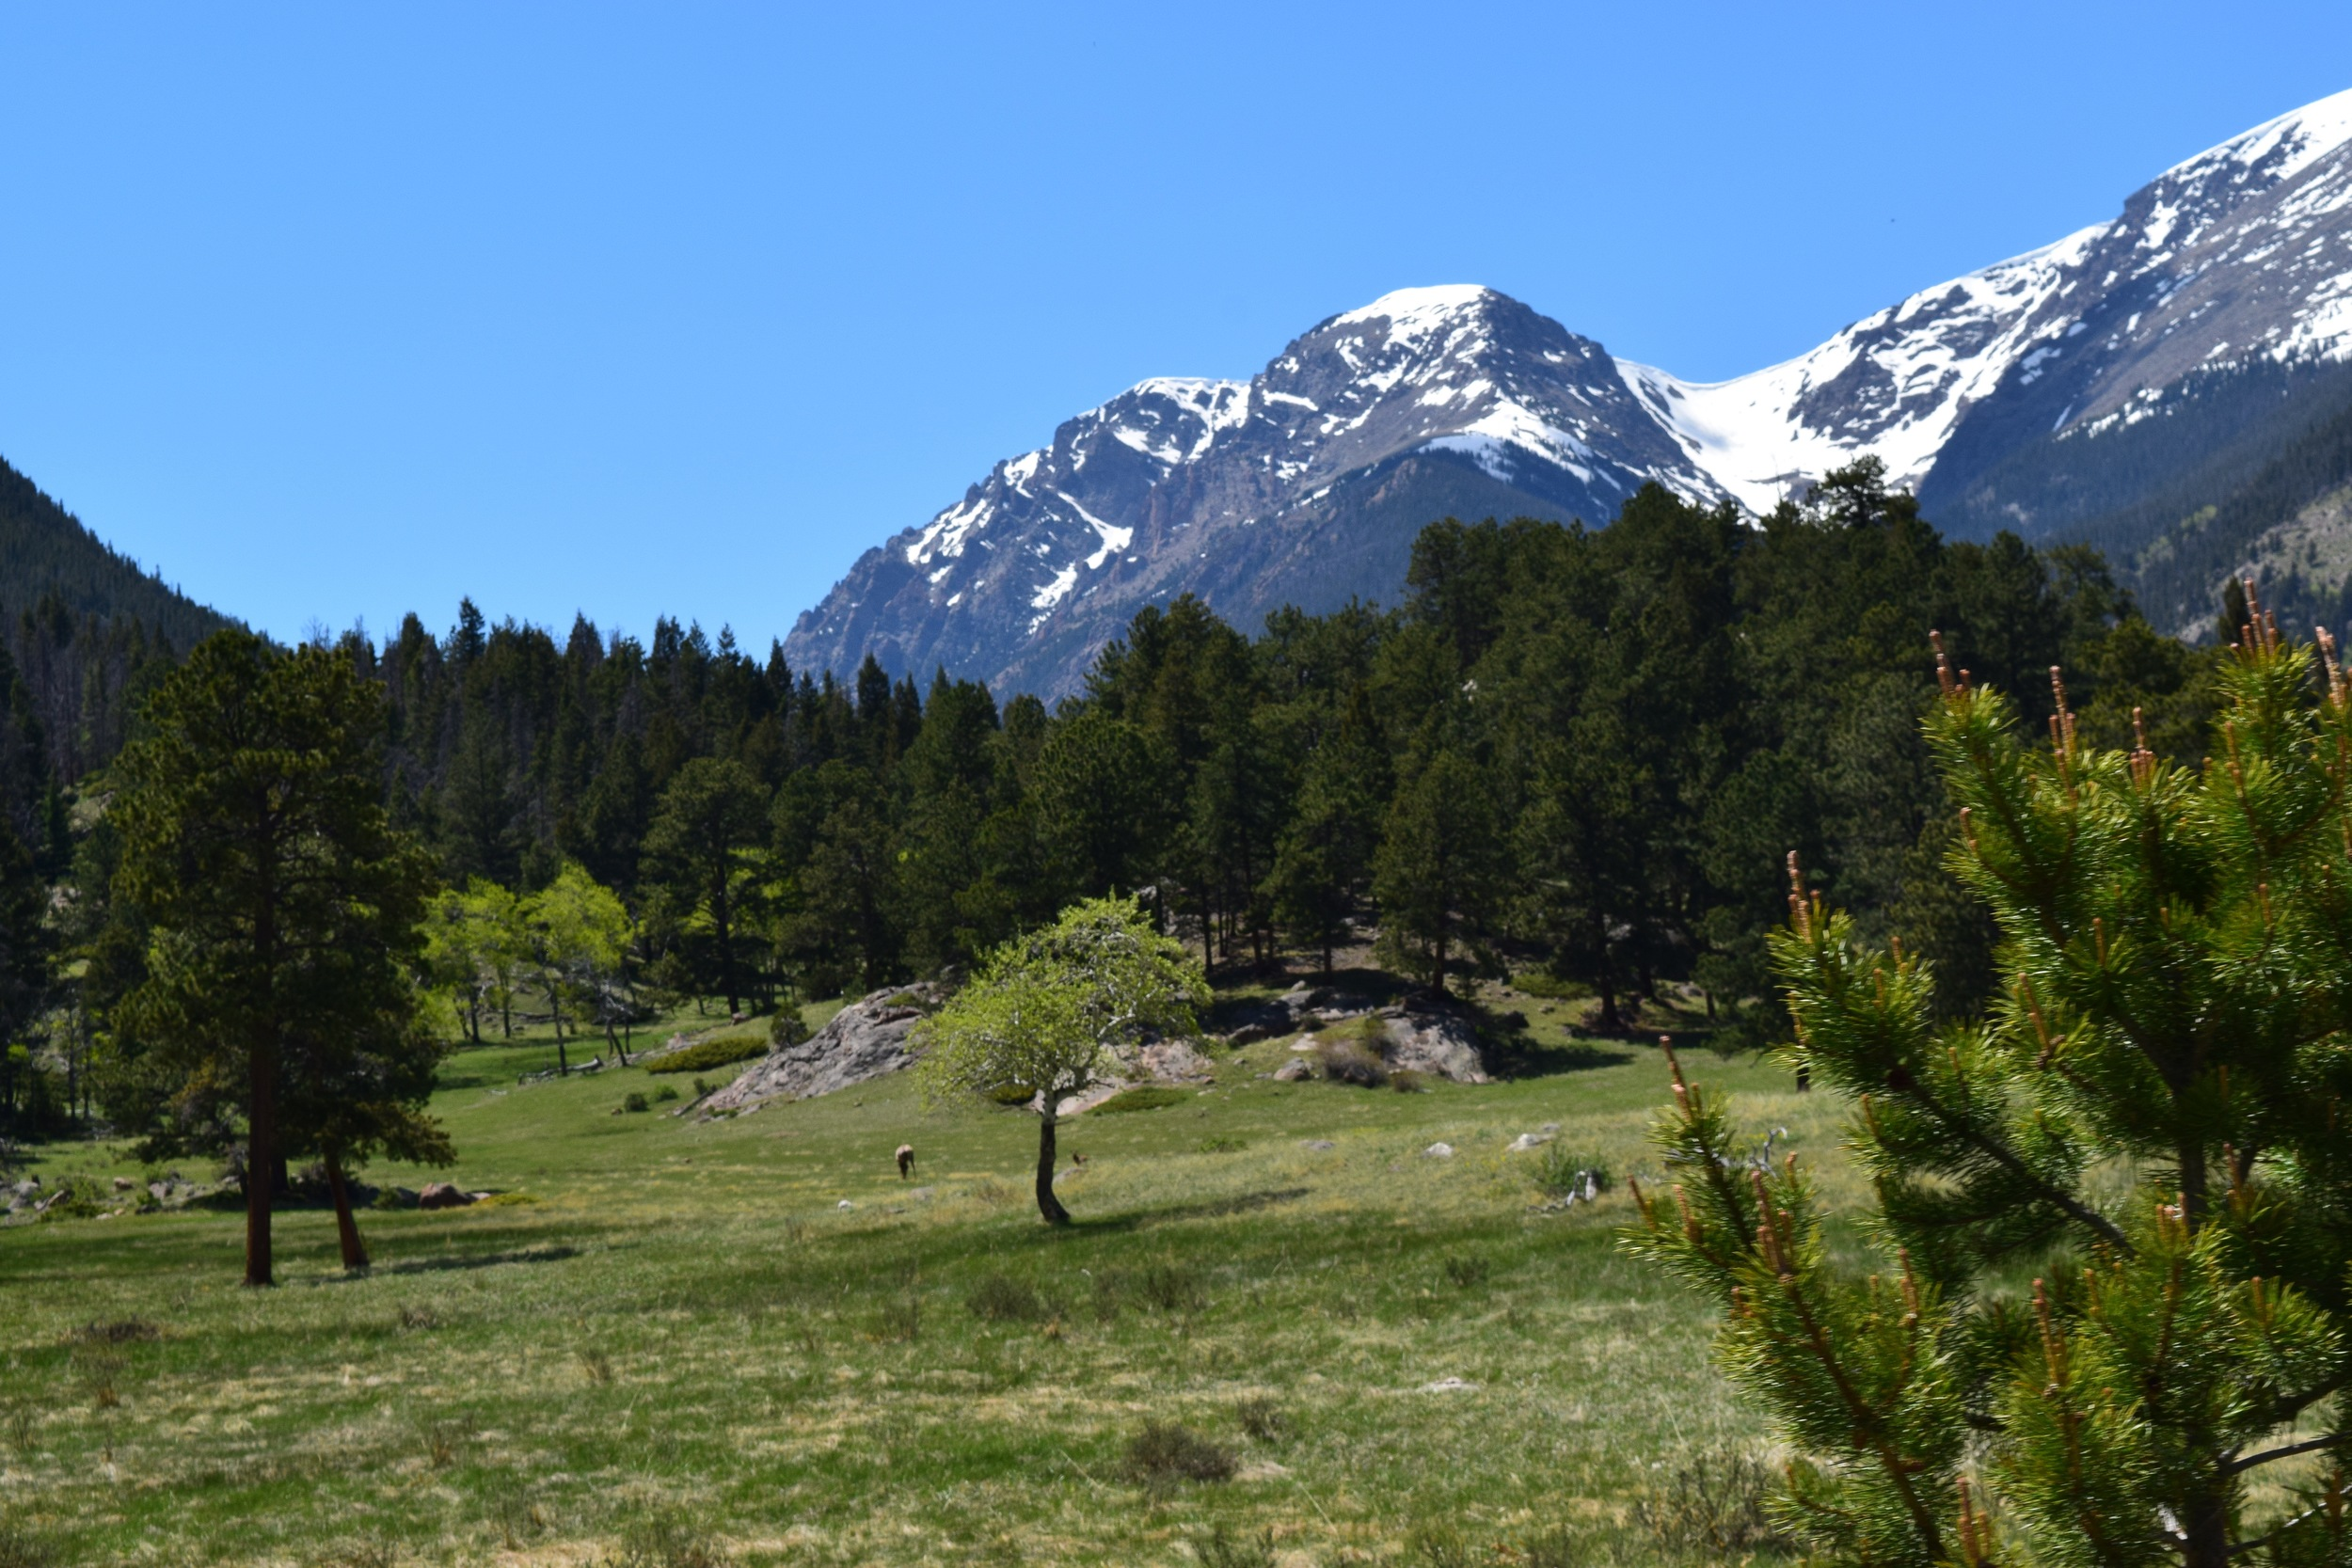 Always forgetting my zoom lens when I really need it - but the small speck to the right of that tree is a elk calf! If you can't see it, just admire those mountains in the background.